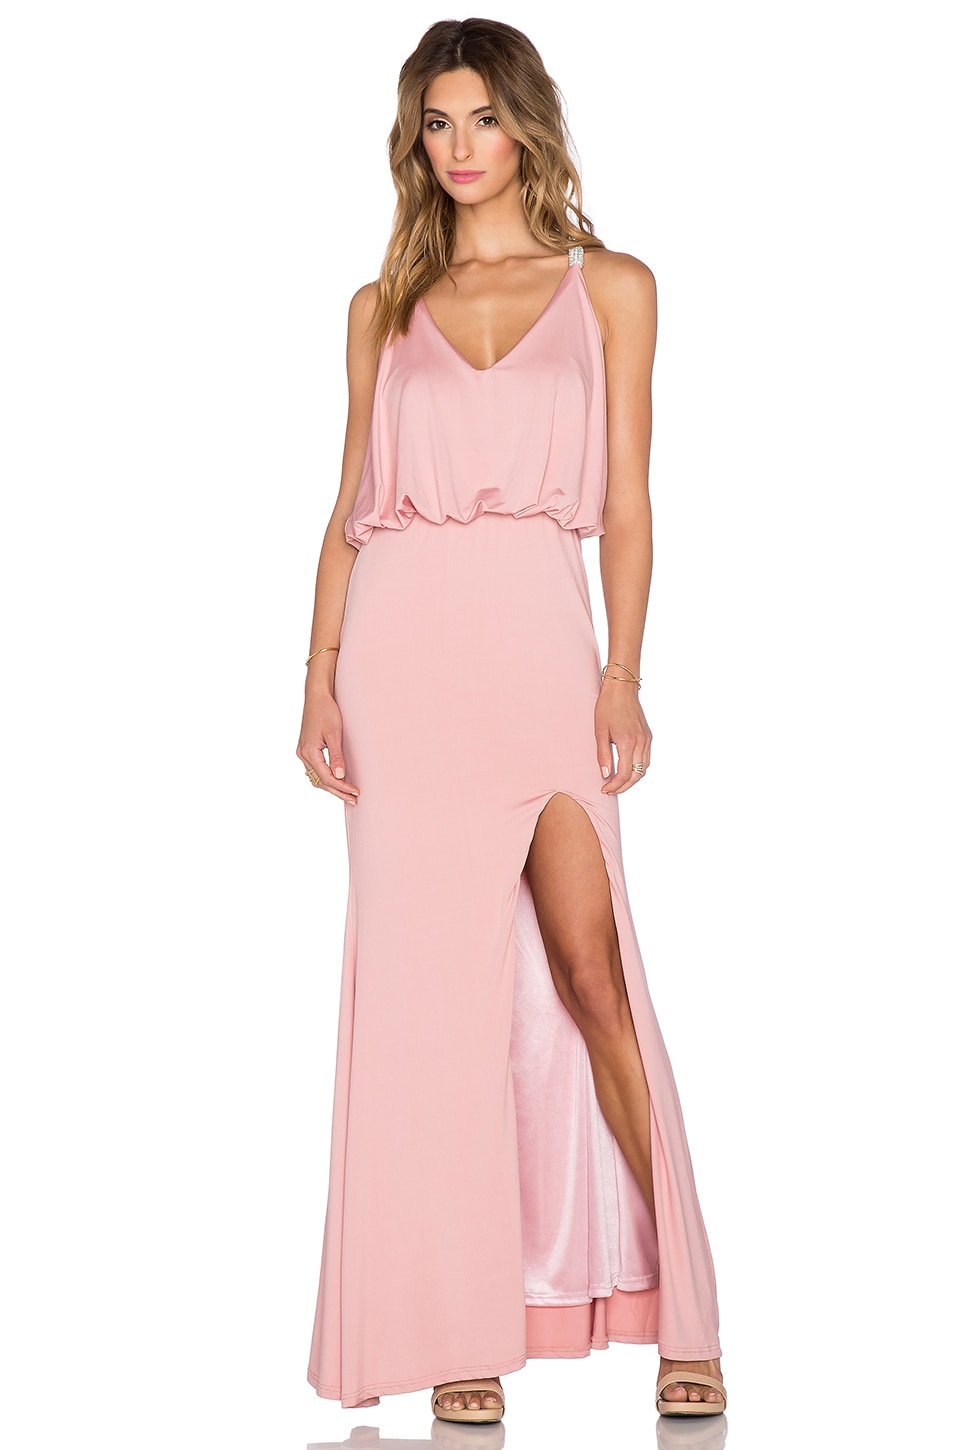 Toby Heart Ginger x REVOLVE Jewel T-Back Dress in Mauve